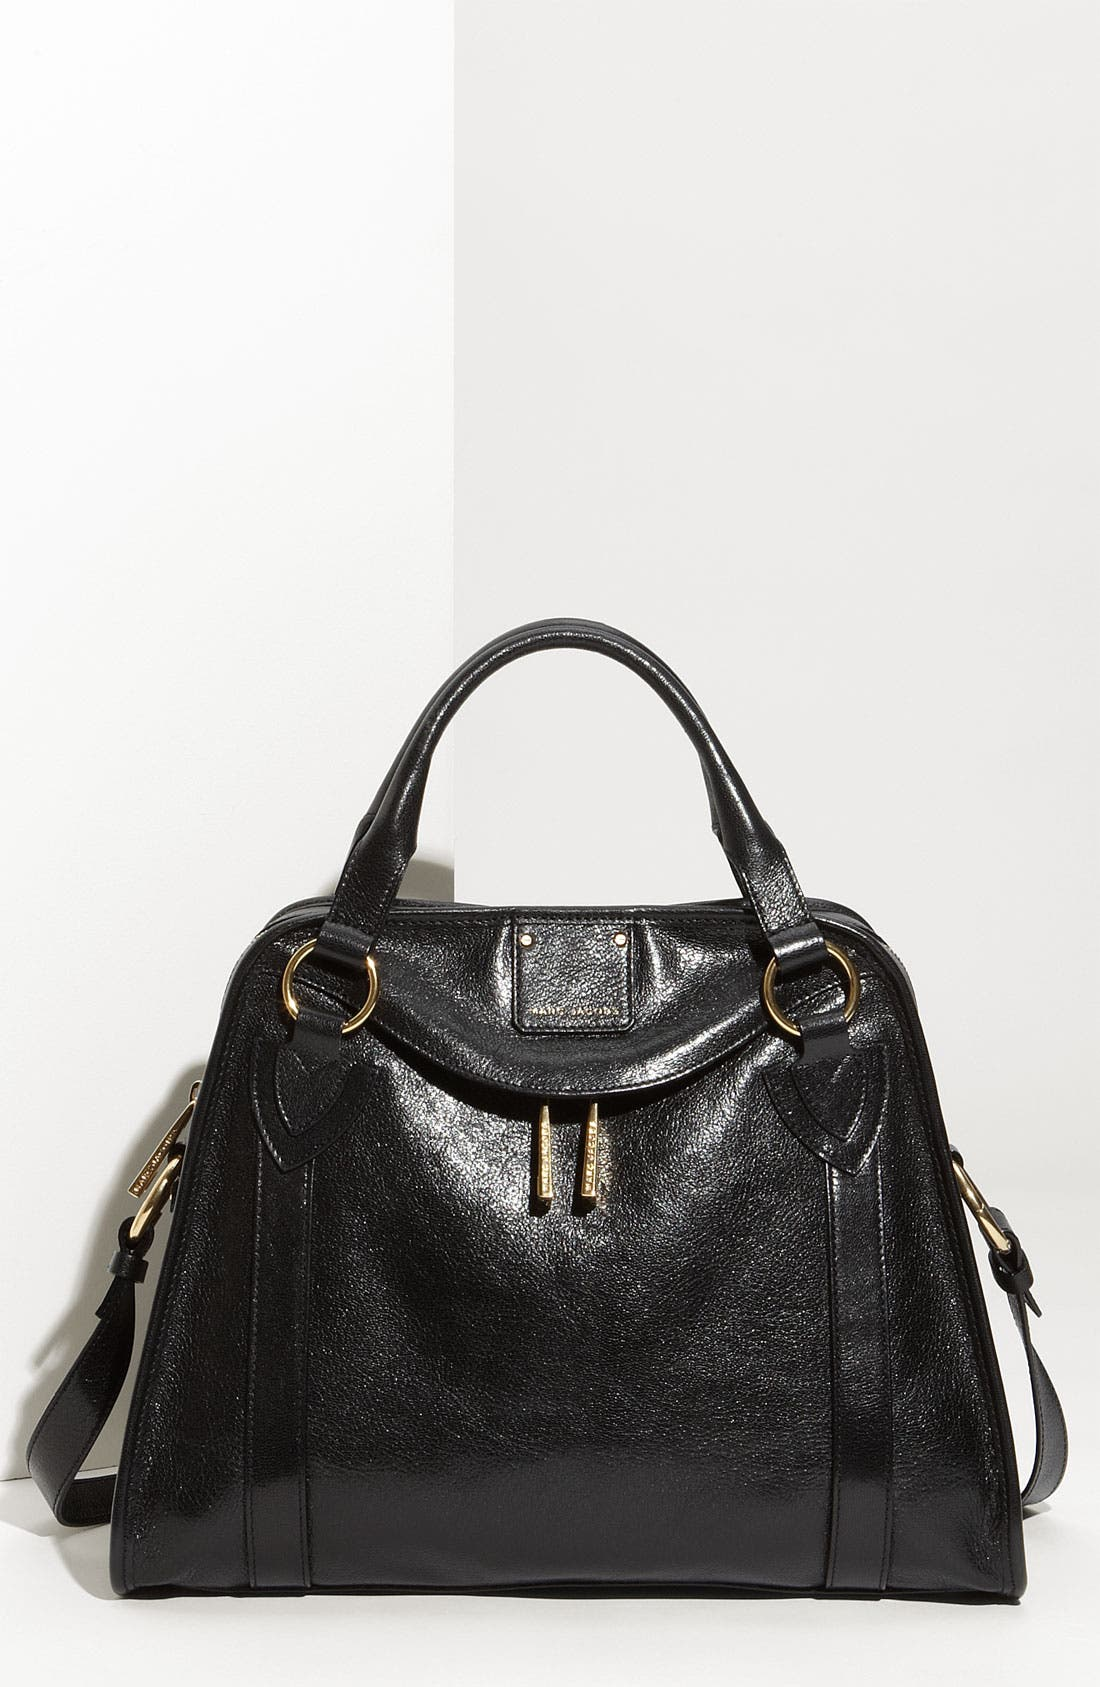 Main Image - MARC JACOBS 'Classic Wellington' Leather Satchel